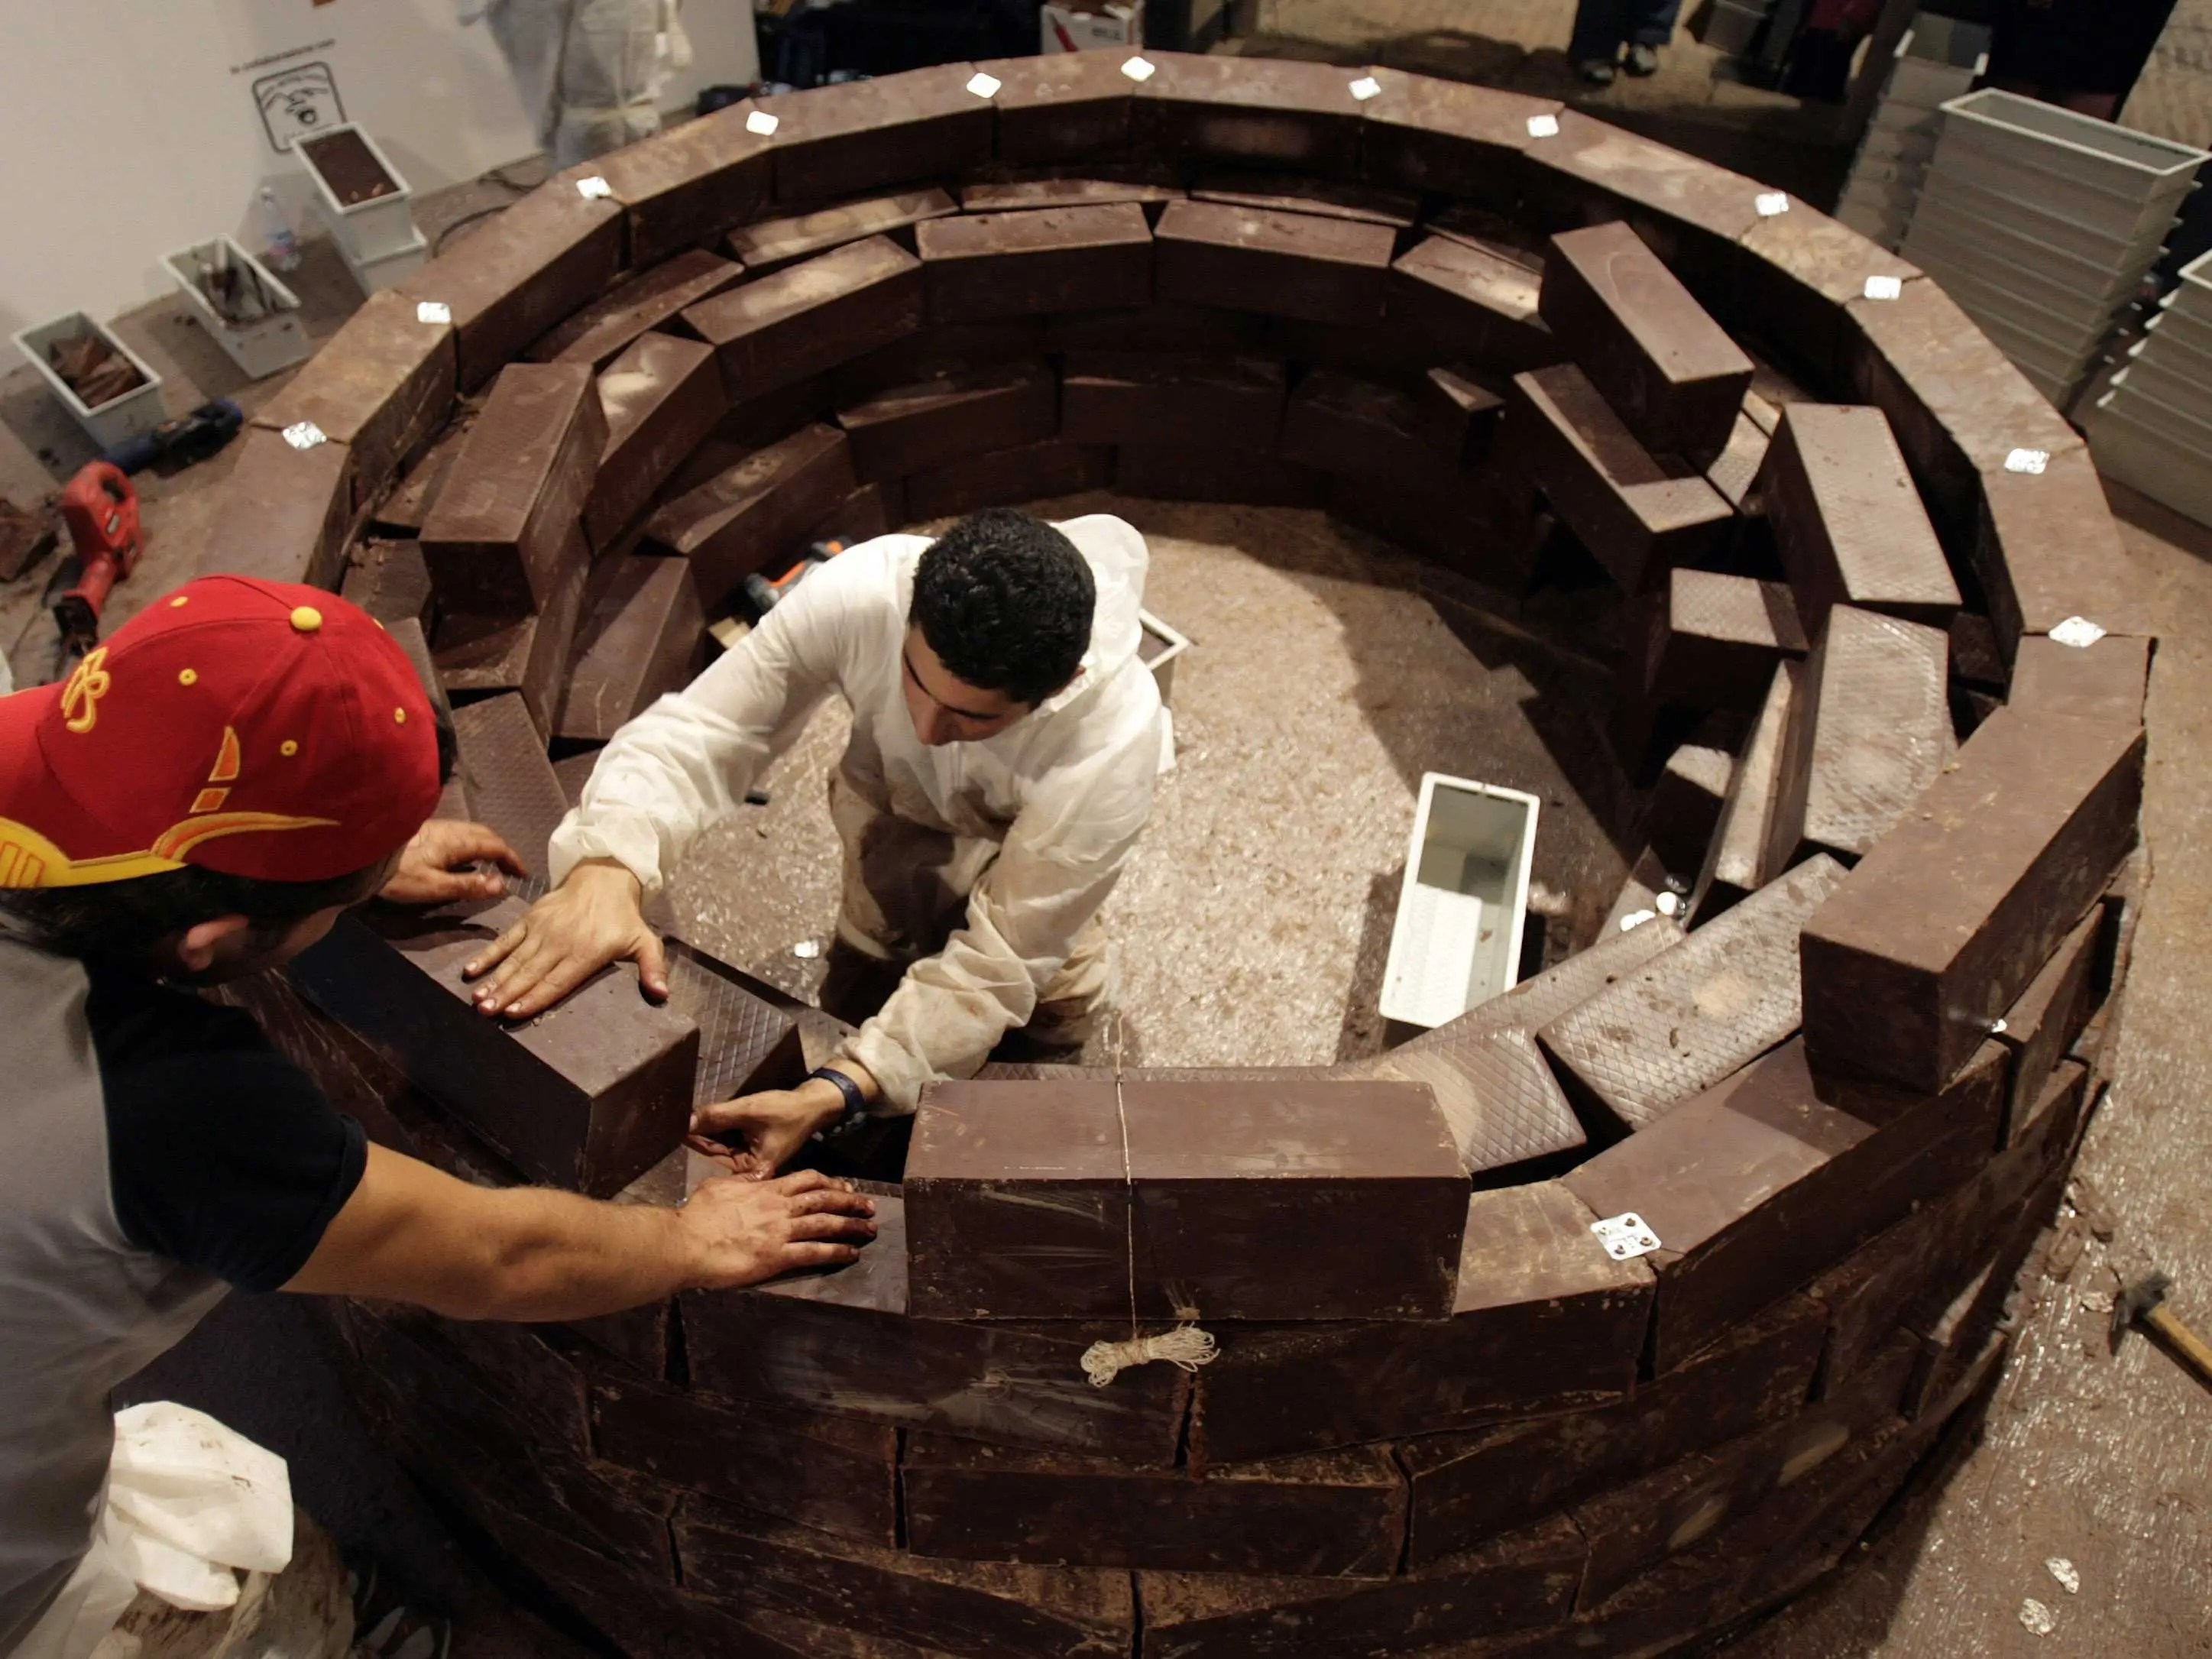 Attend the Eurochocolate Festival to celebrate the city of Perugia's world famous chocolate.